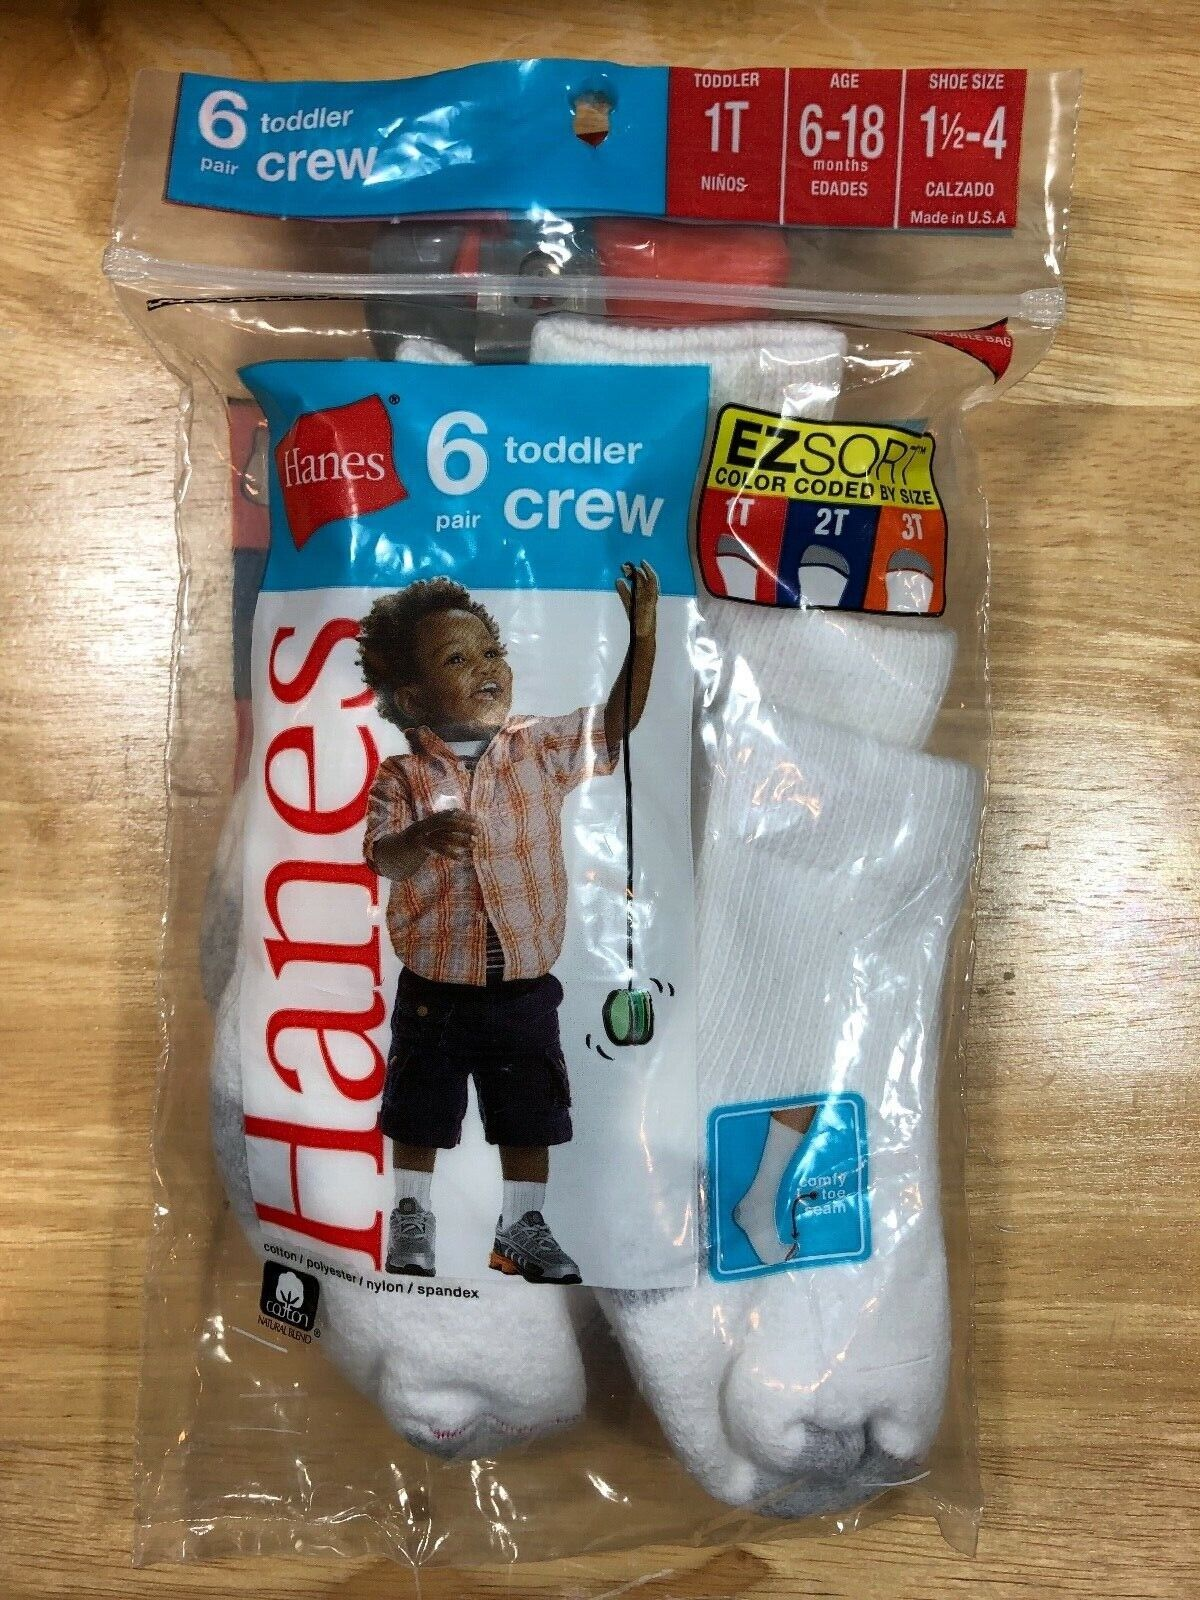 NEW HANES 6-18 MONTHS EZ SPORT 6 PAIRS CREW TODLER SHOE SIZE 1.5-4 WHITE US MADE Baby